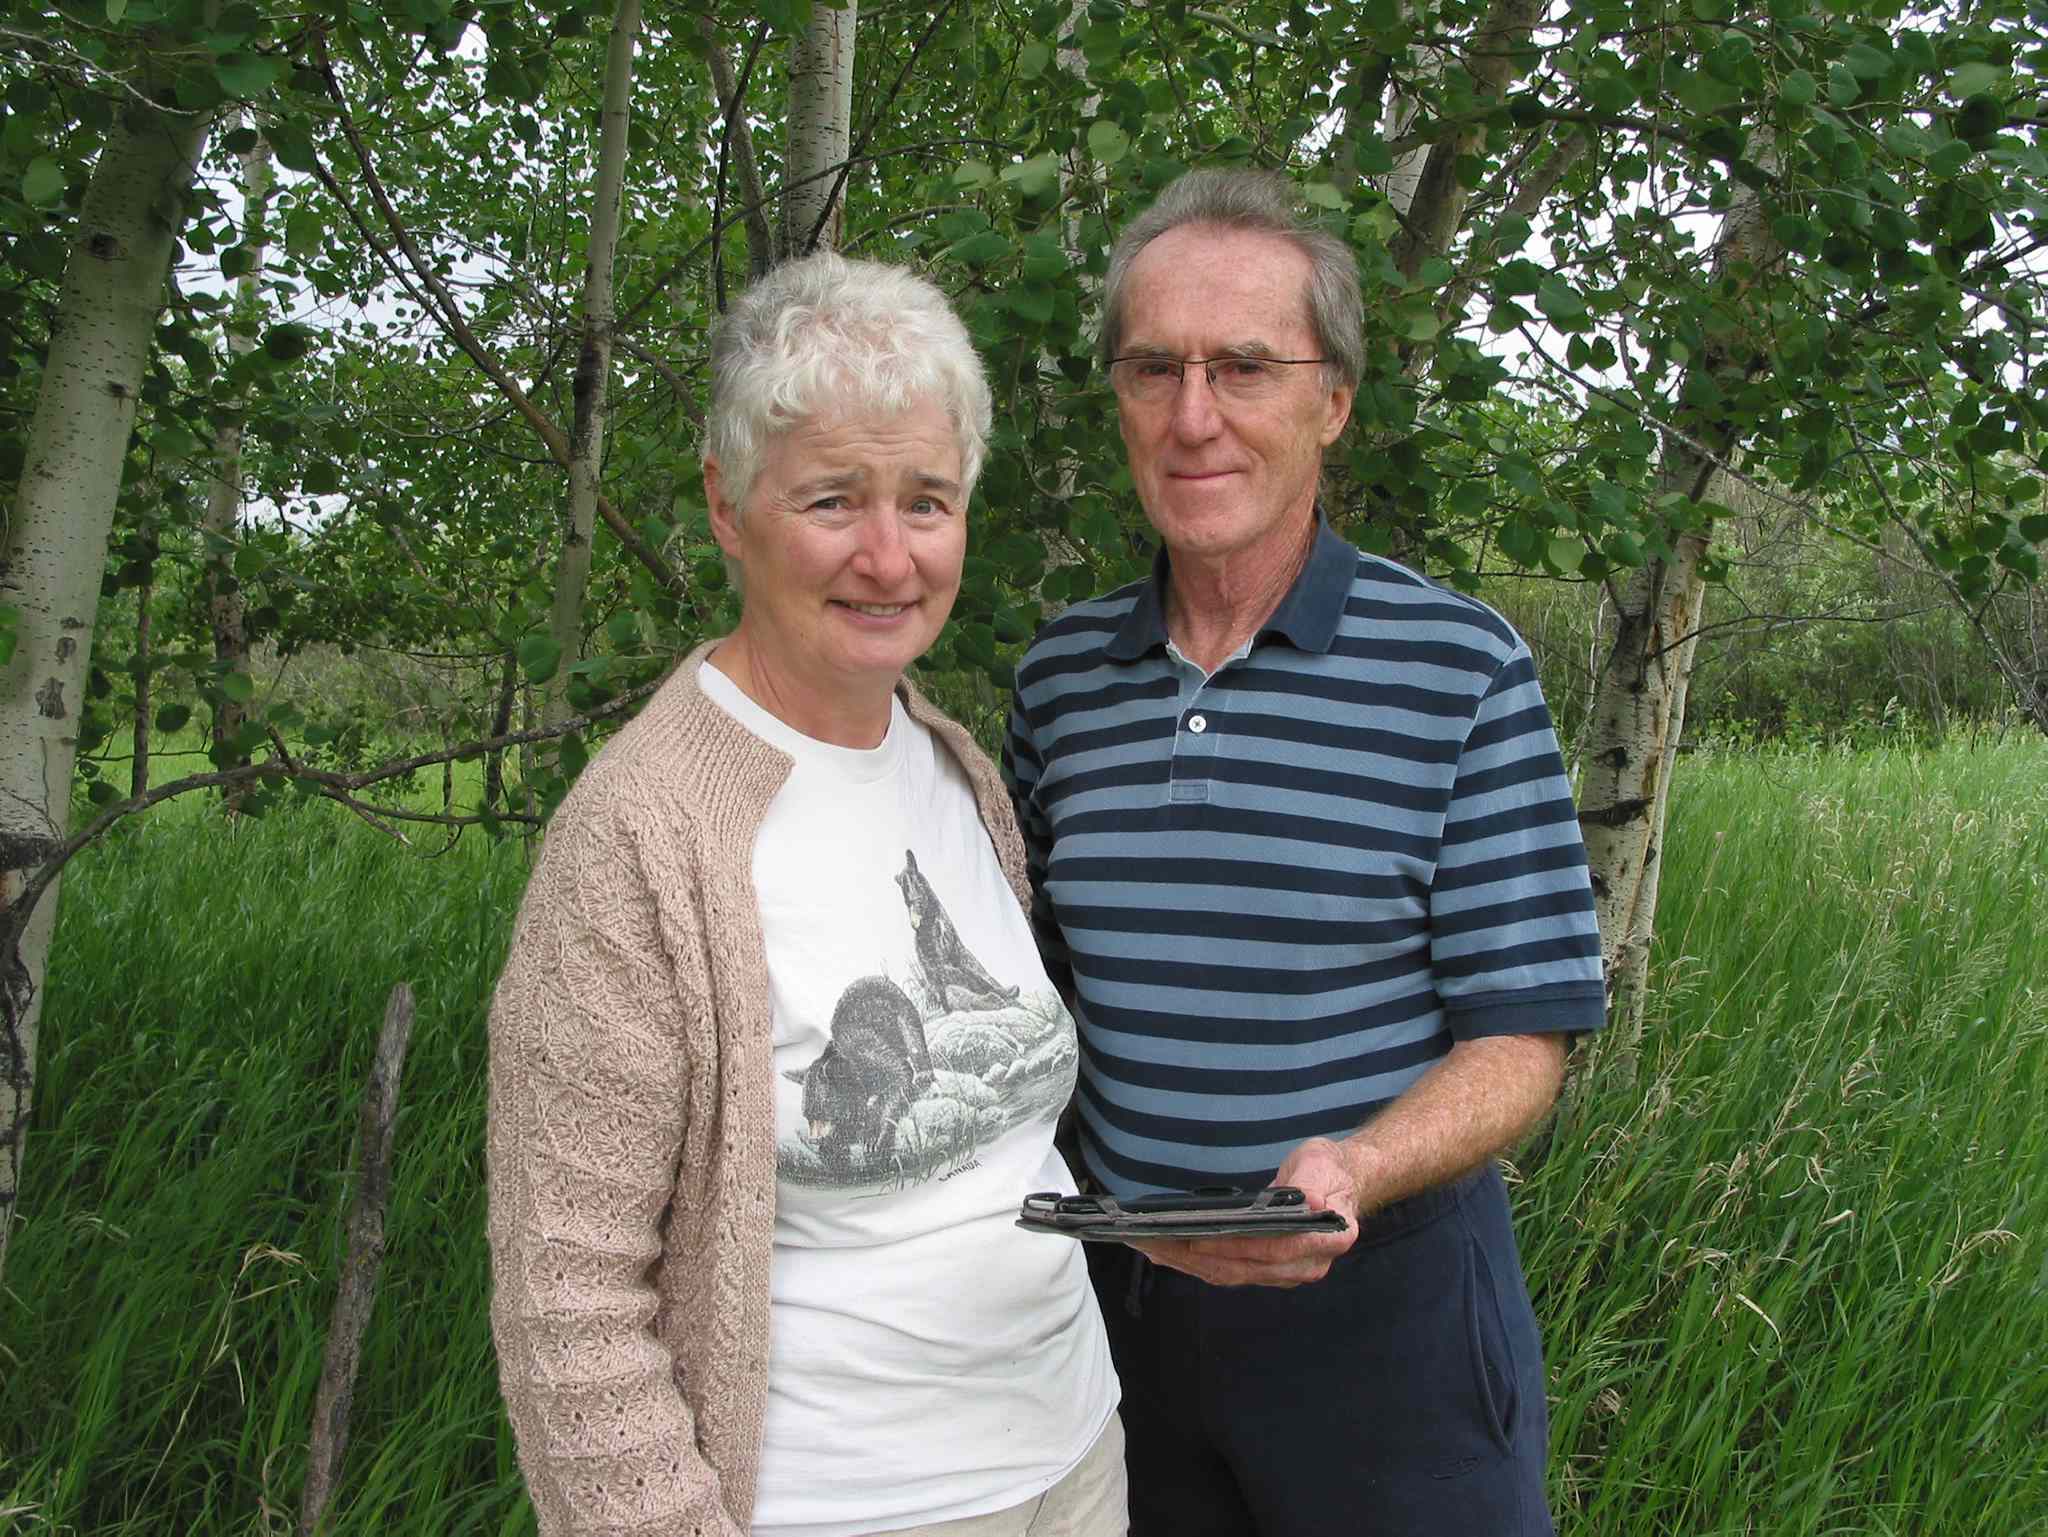 Evelyn and Robert Burch, of Headingley, enjoy the challenge of geocaching in Canada and abroad.